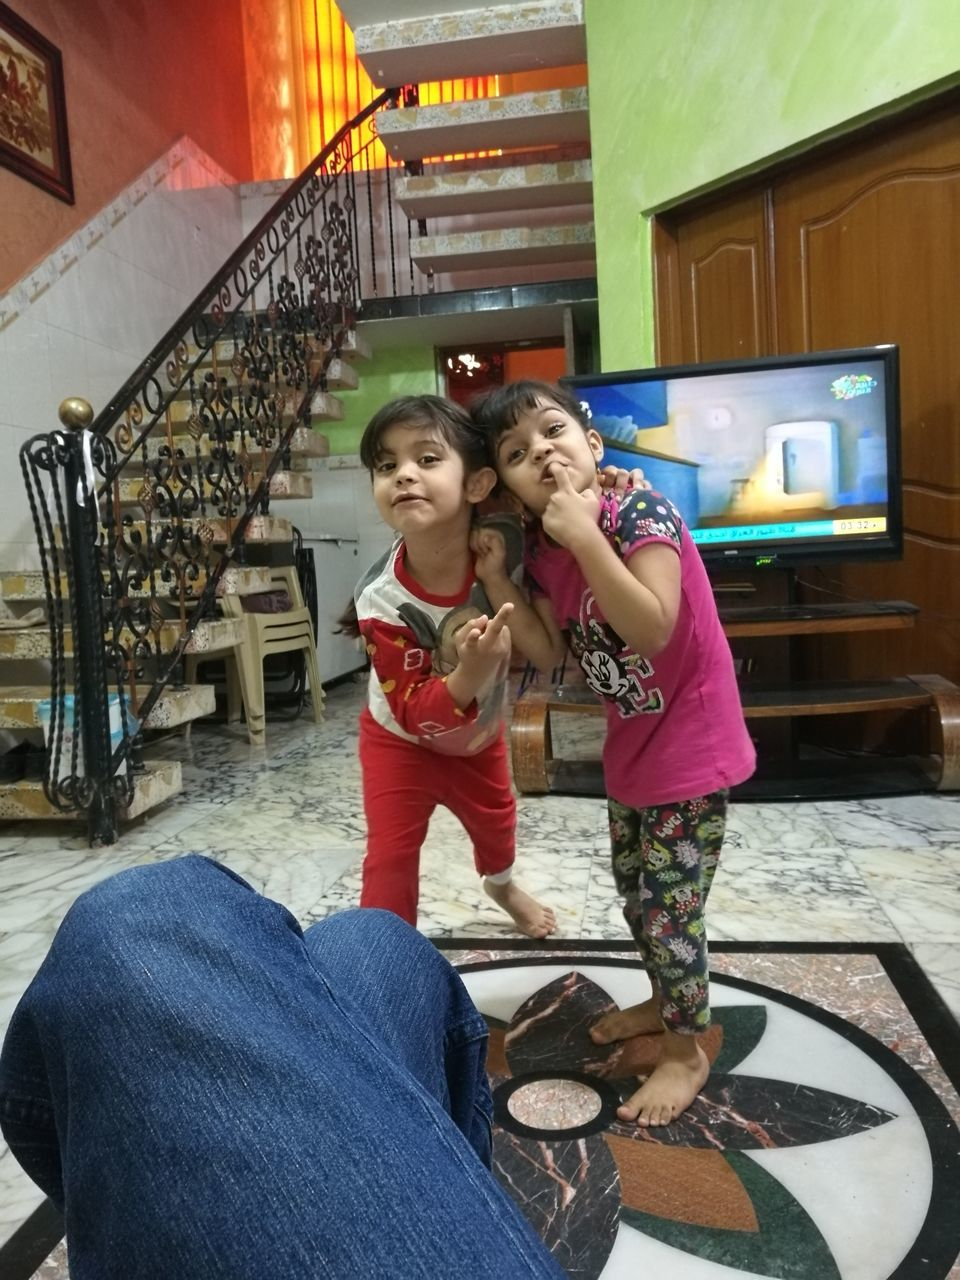 togetherness, casual clothing, real people, childhood, leisure activity, mother, elementary age, bonding, love, lifestyles, girls, standing, family with one child, daughter, indoors, boys, full length, holding, technology, sitting, day, young women, young adult